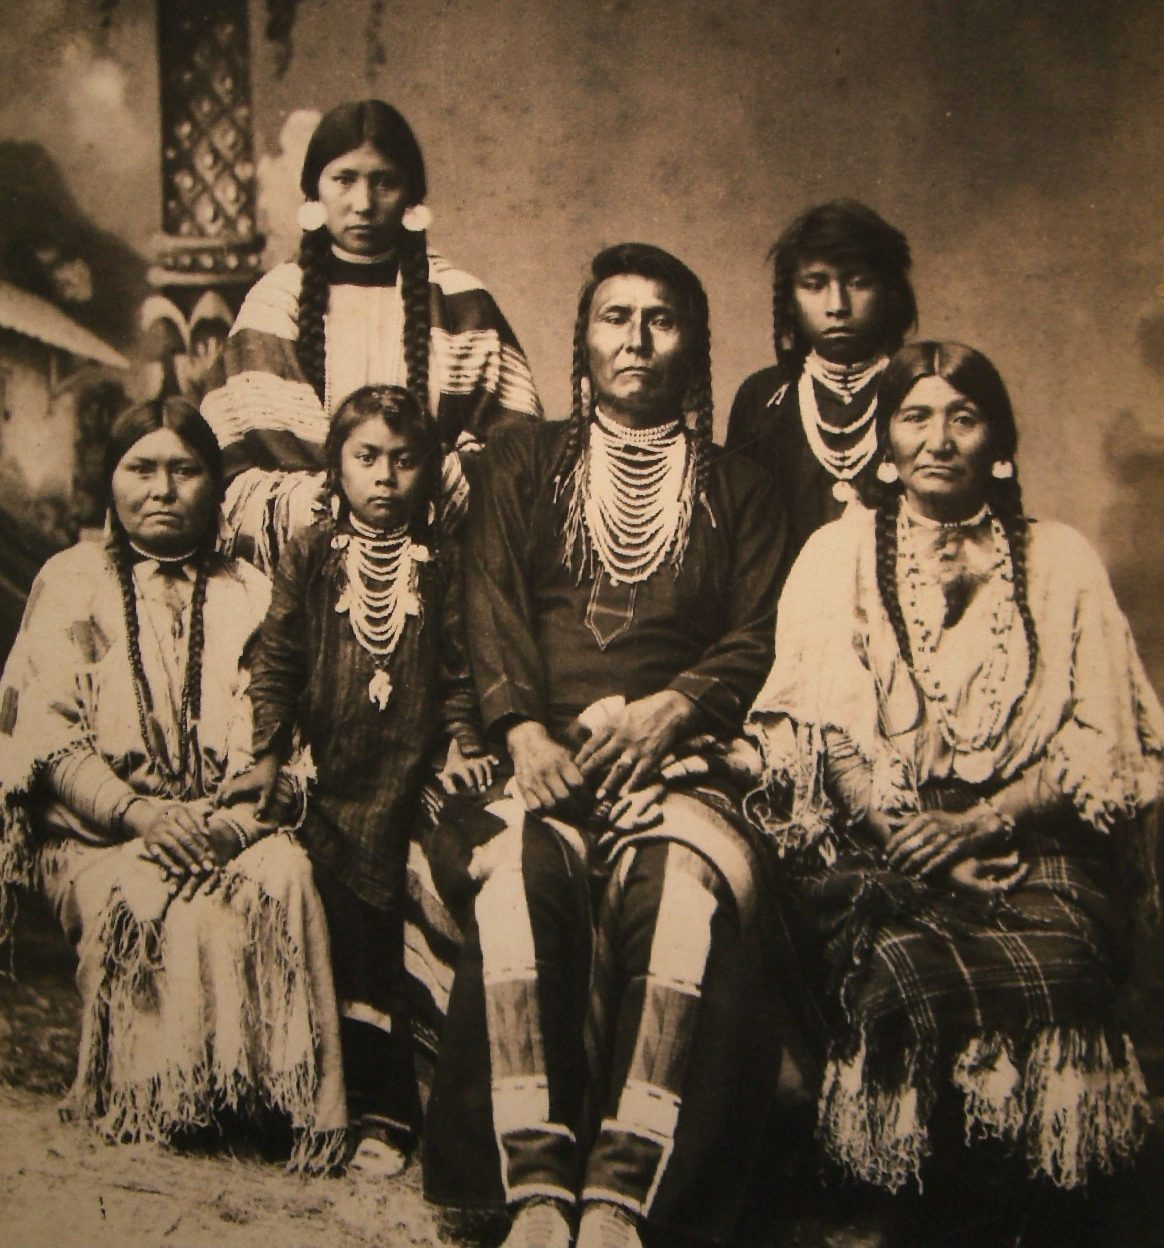 Chief Joseph and family, c. 1880